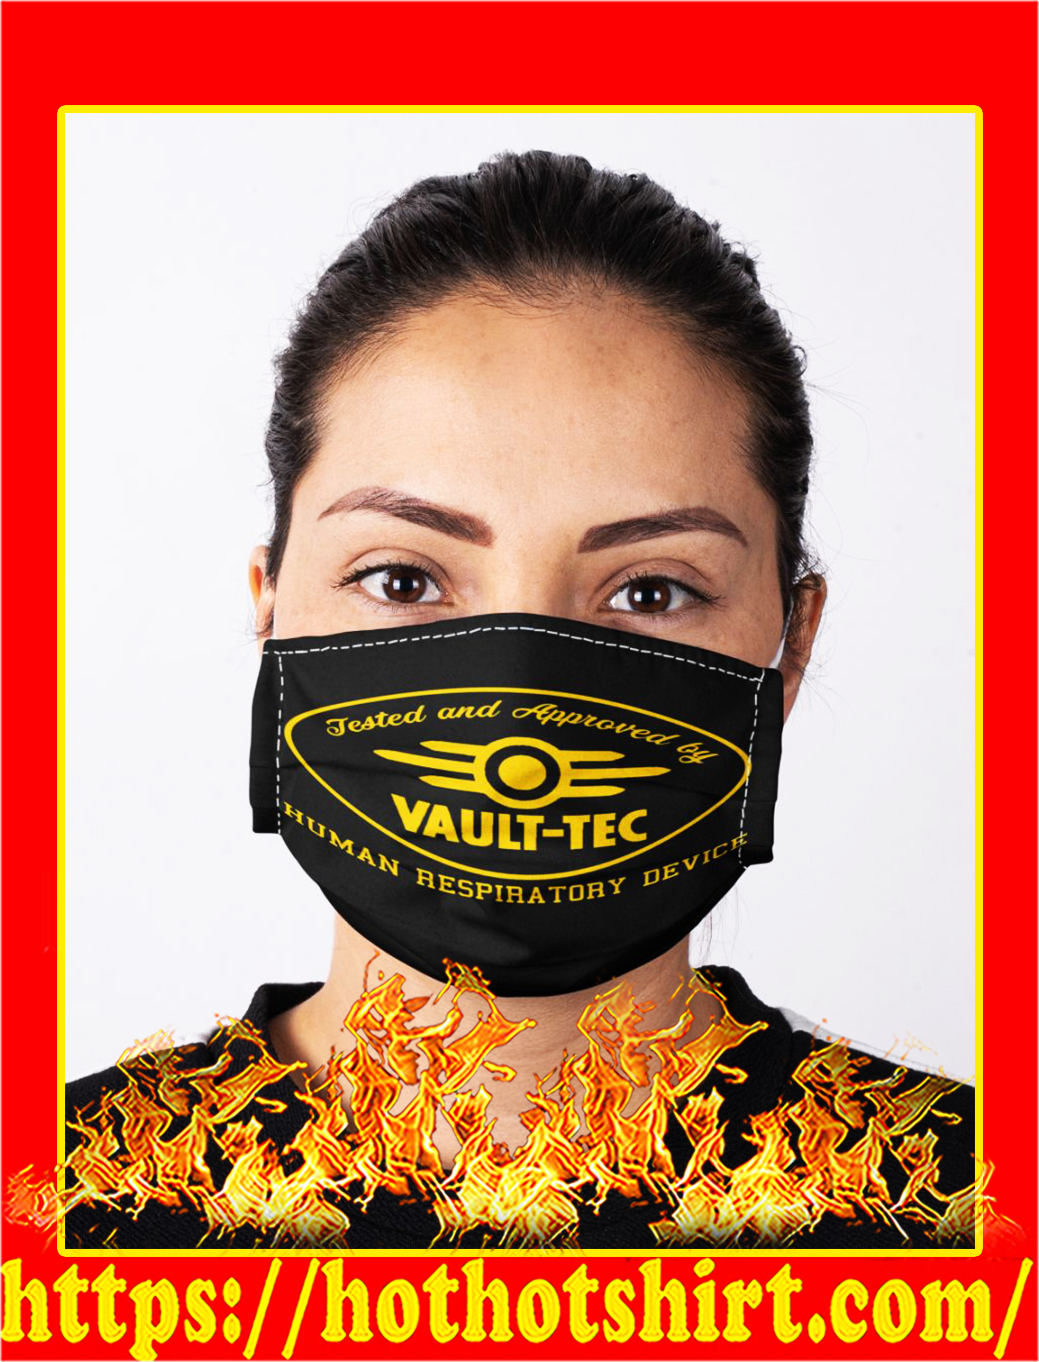 Tested and approved by vault-tec human respiratory device face mask- pic 1